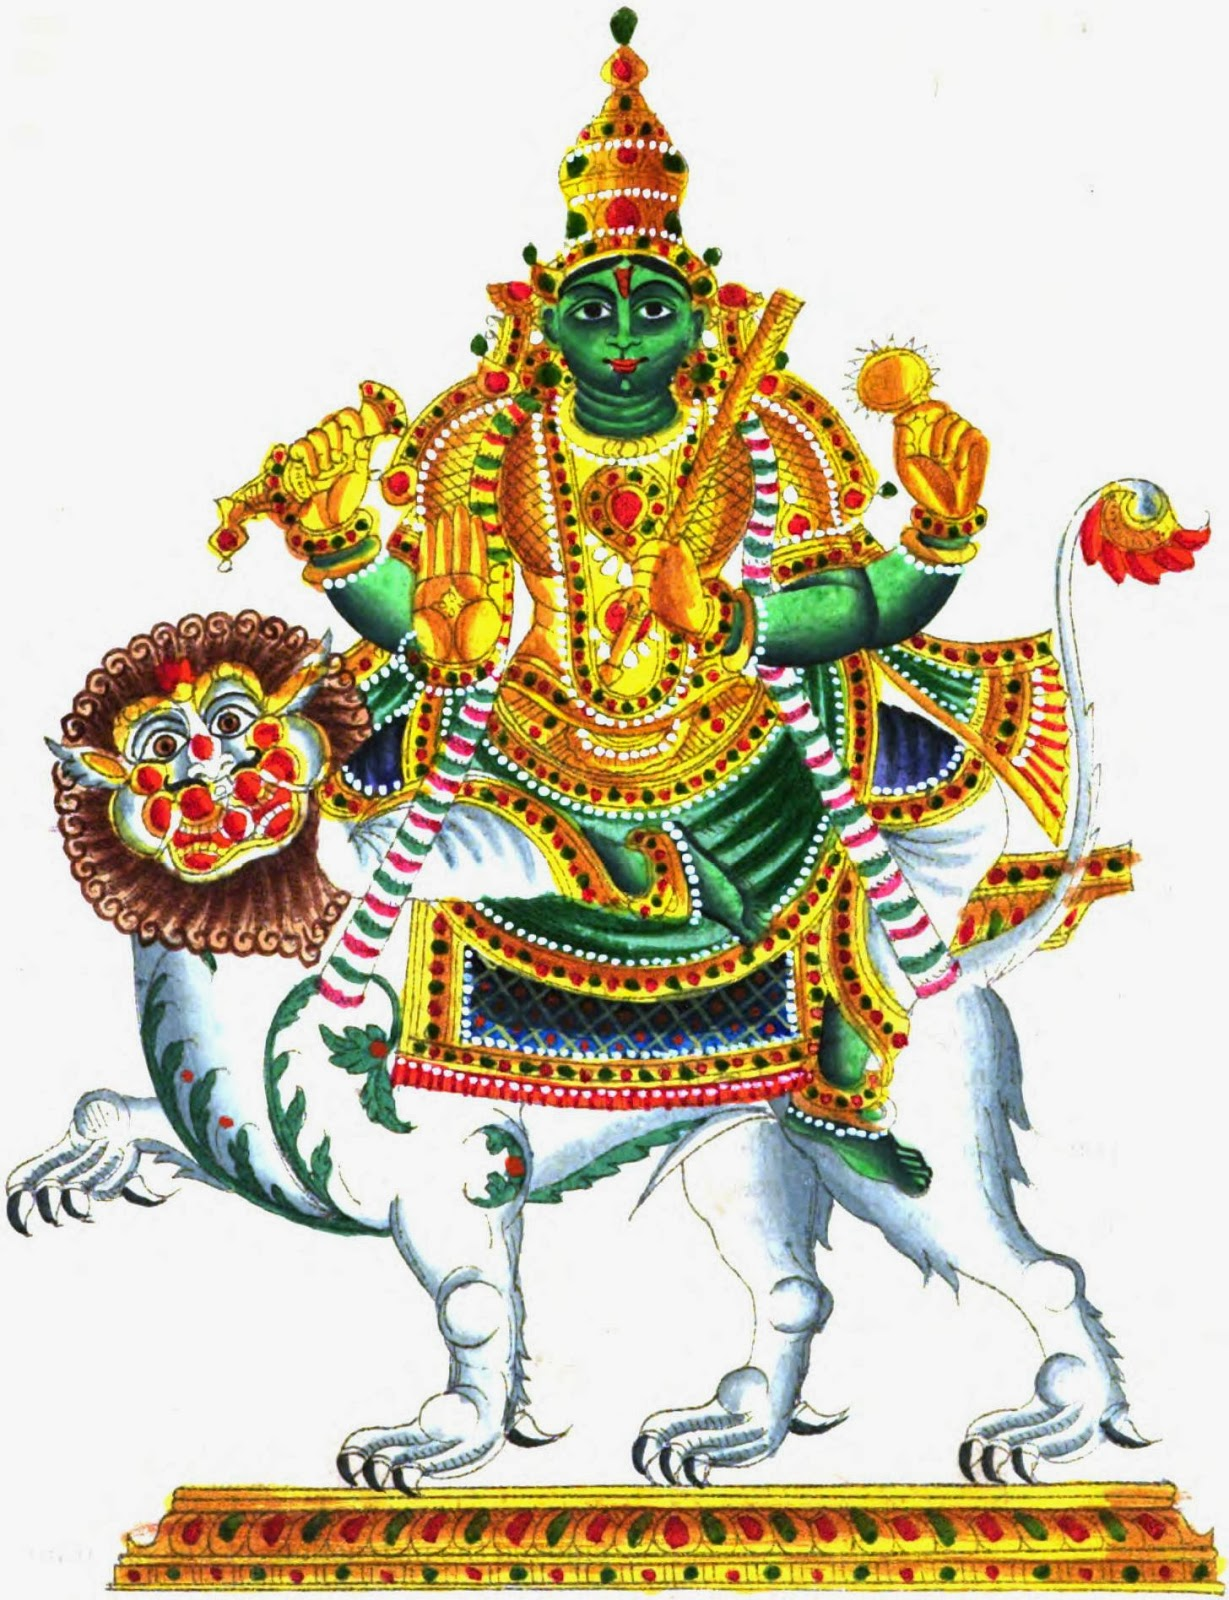 Lagna and Mercury Effect, lal kitab and mercury effect, best astrologer in jaipur, astrologer on phone